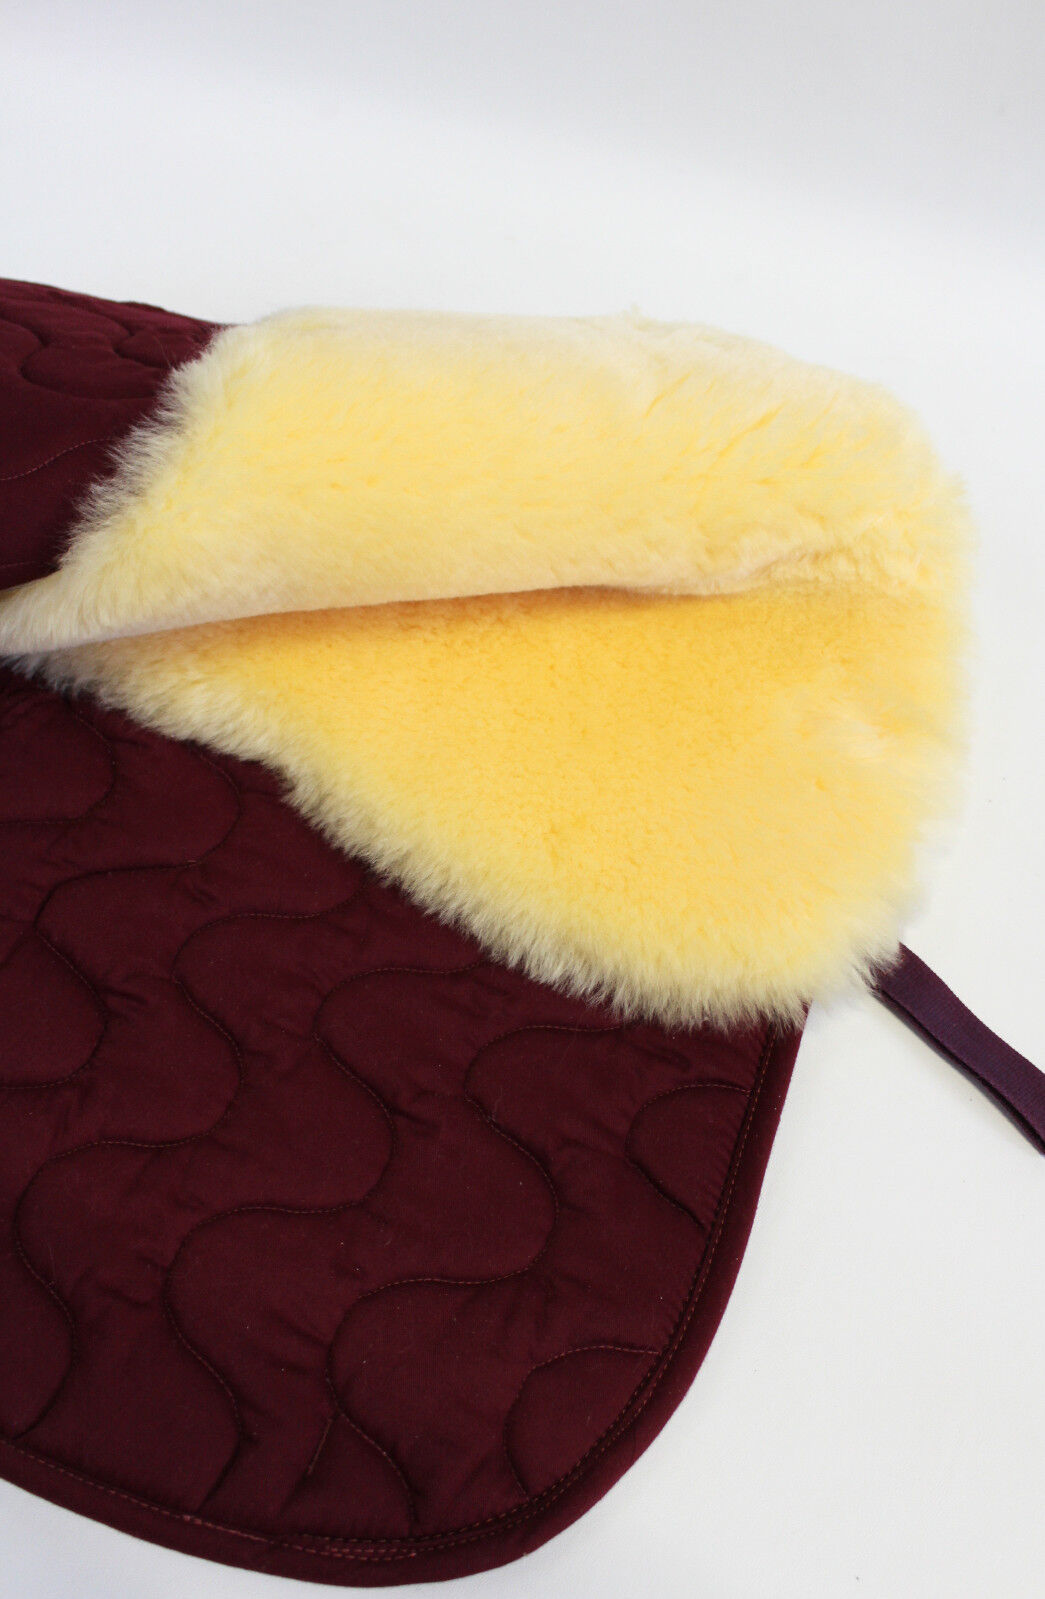 Real Sheepskin Pad for Ceiling, Saddlecloth, Pad - Tapis de Selle, Lambskin